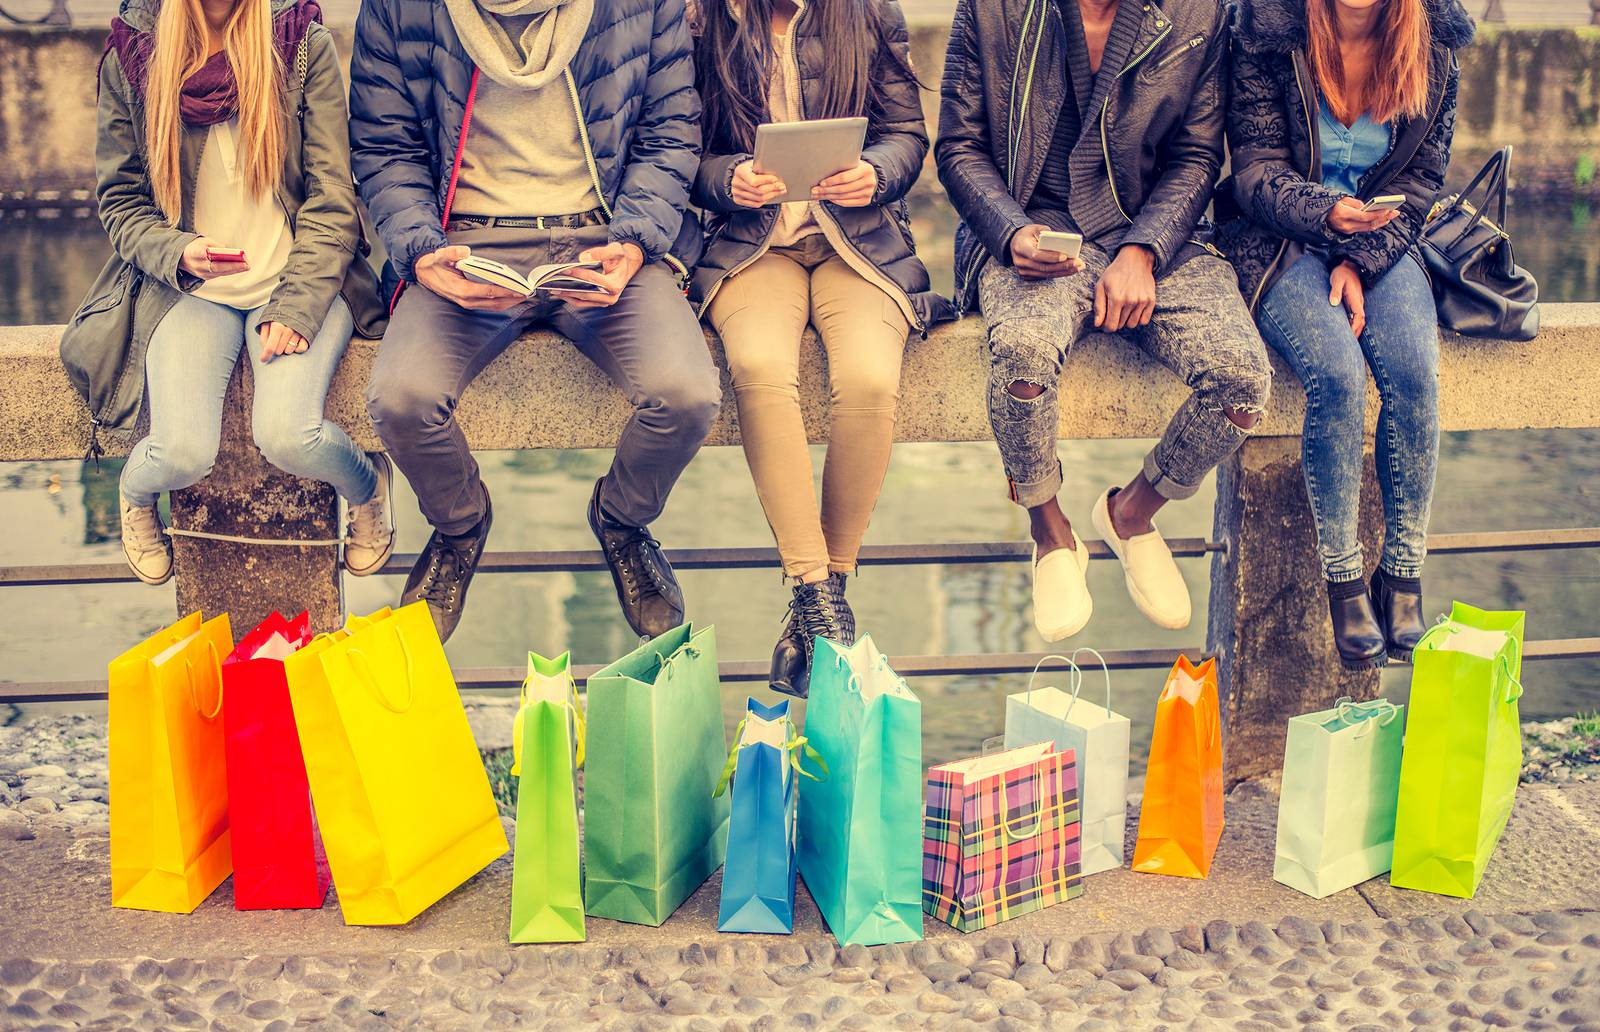 Group of friends sitting outdoors with shopping bags - Several people holding smartphones and tablets - Concepts about lifestyleshoppingtechnology and friendship